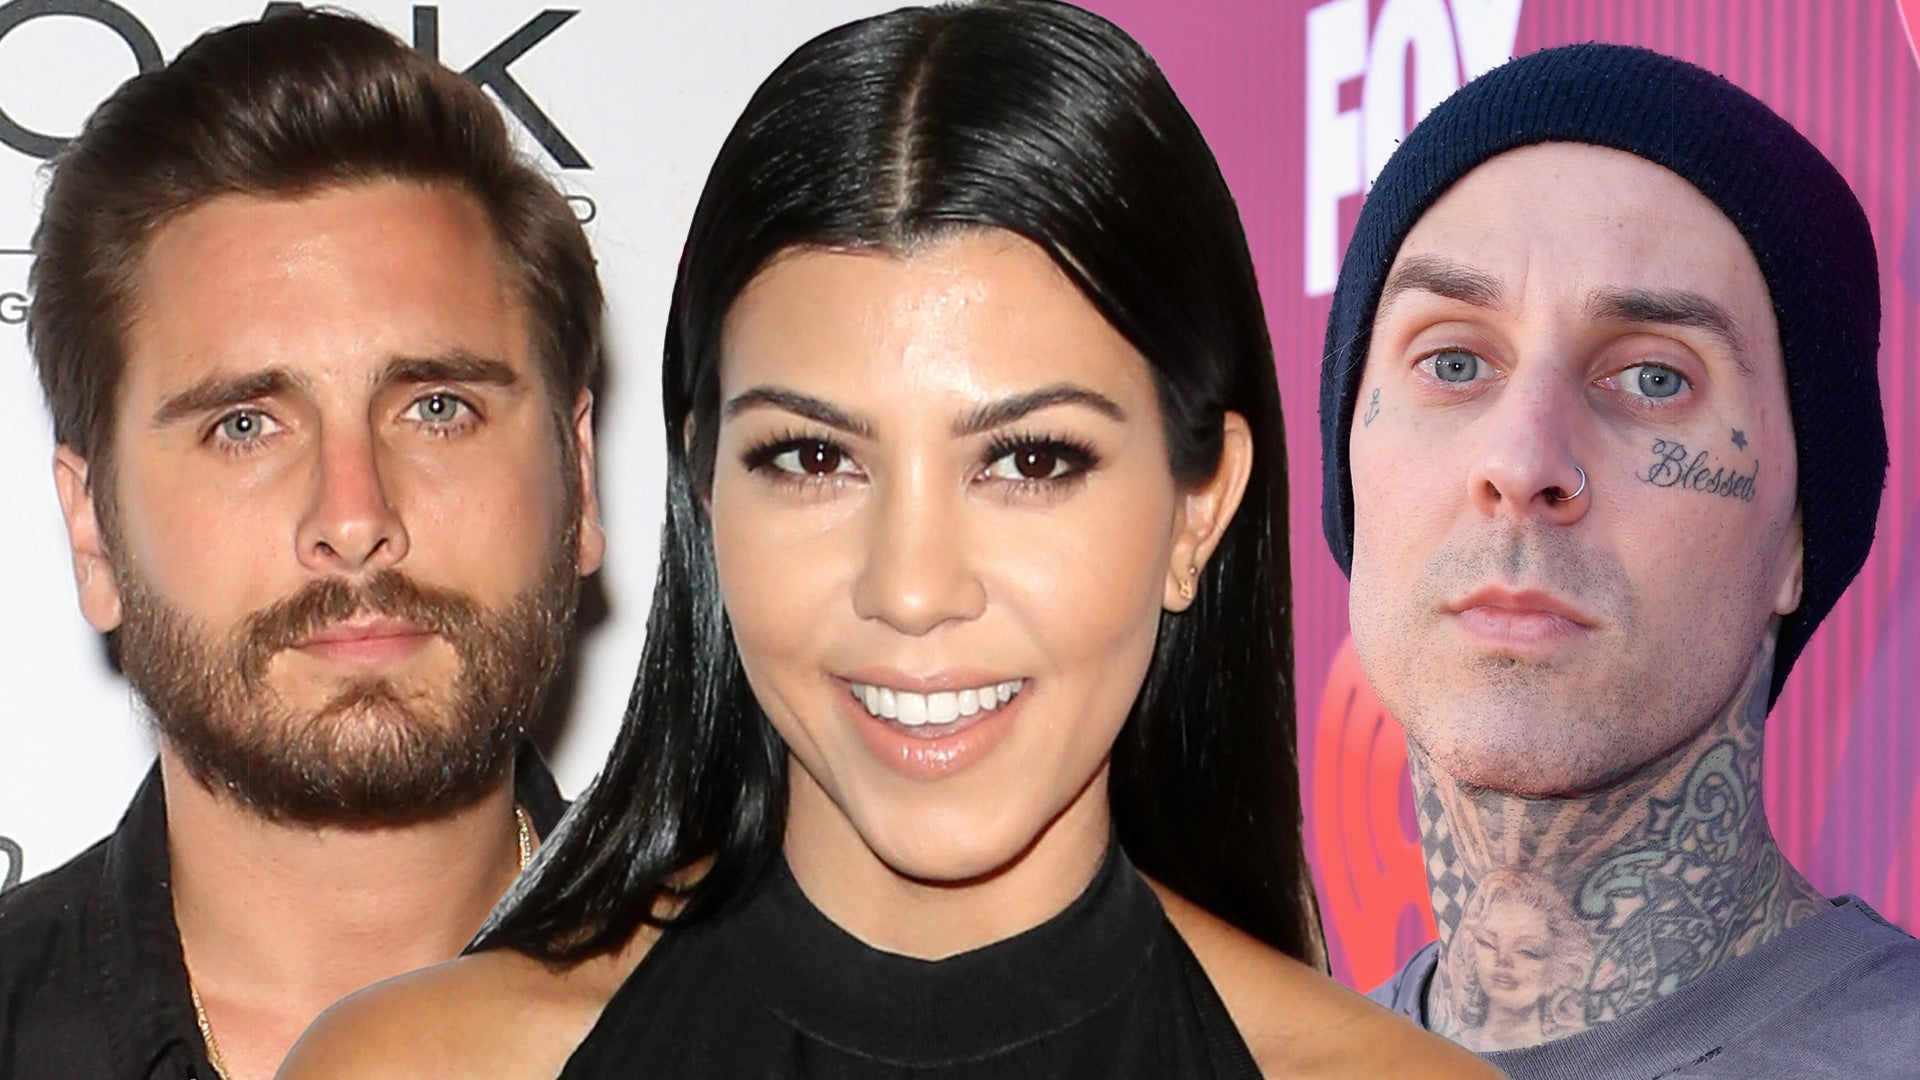 kuwtk-kourtney-kardashian-heres-how-shes-trying-to-balance-her-new-romance-with-travis-barker-and-co-parenting-with-scott-disick